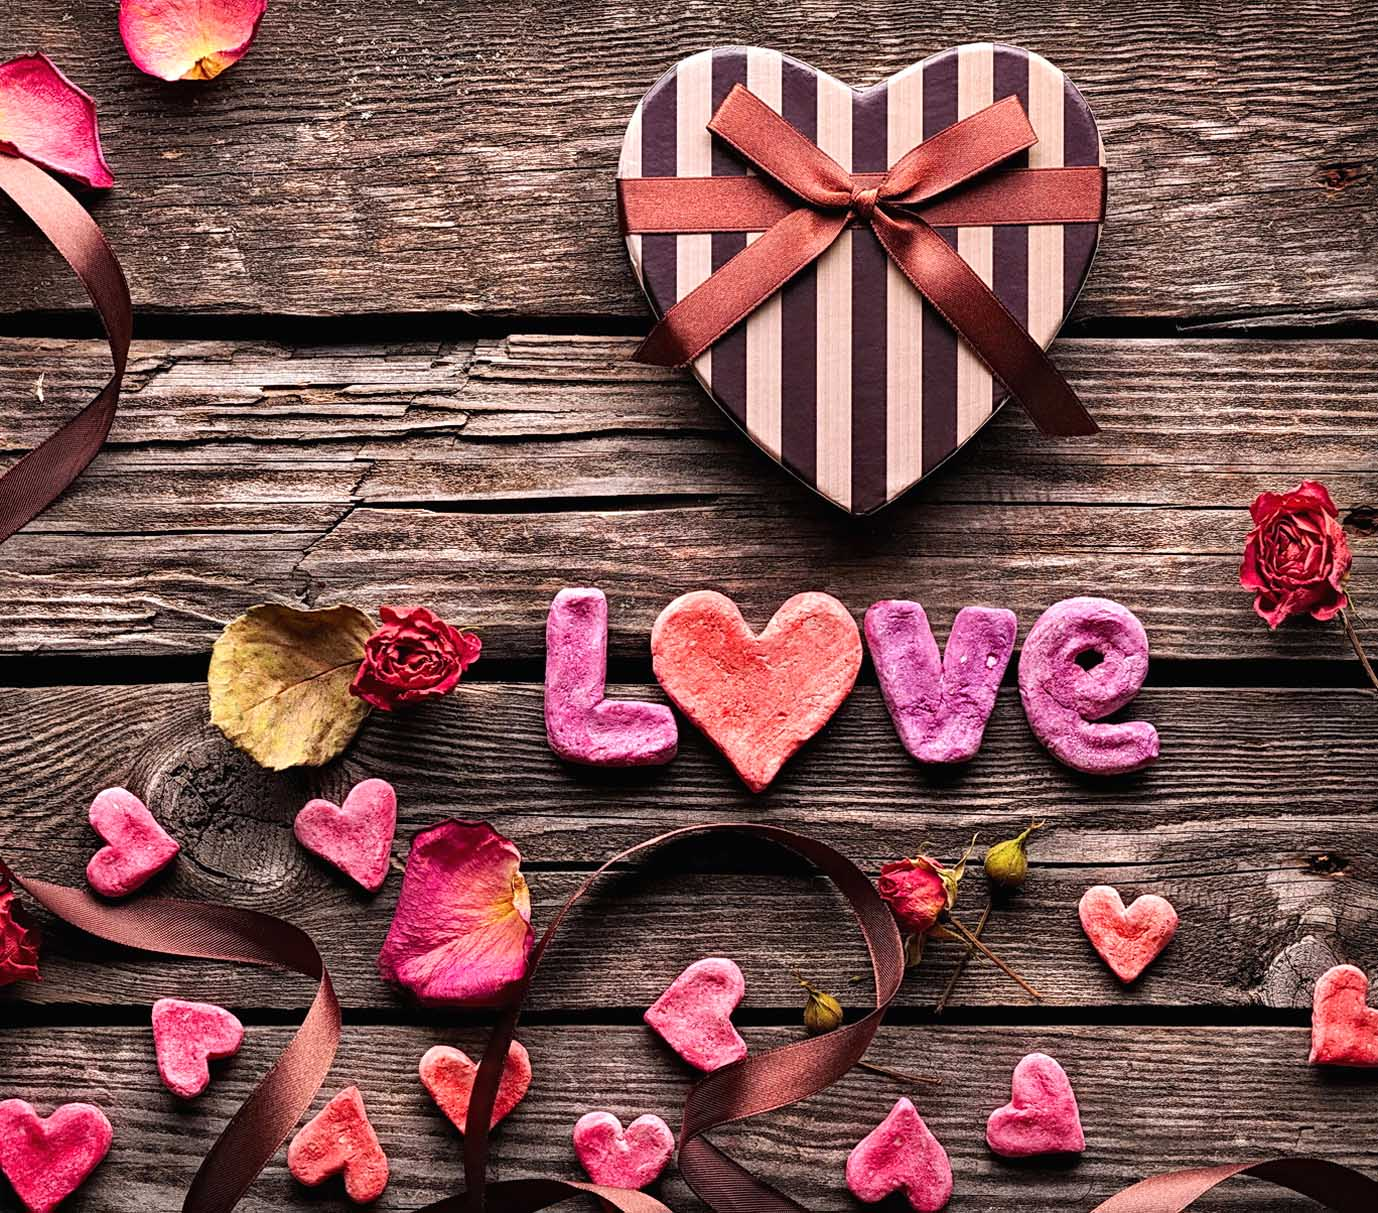 Free Download Download Love Wallpapers For Mobile Elegance